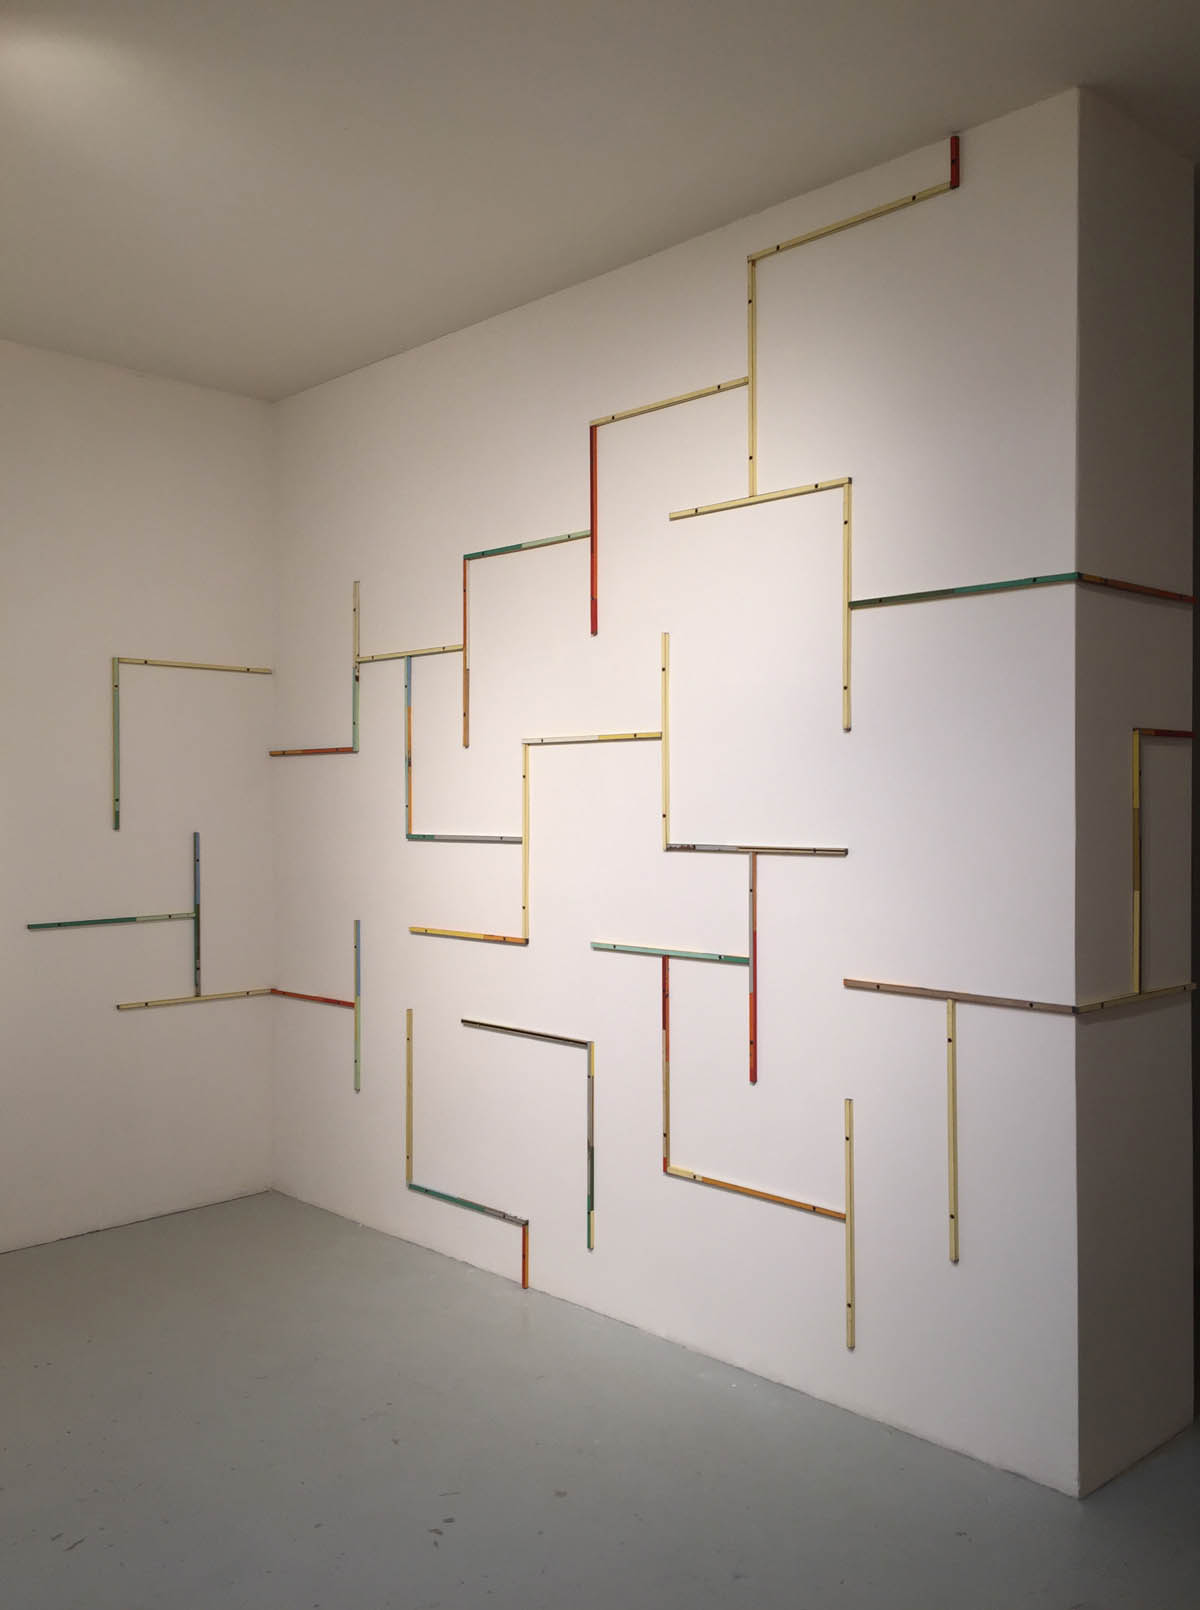 Work in Progress, As-Yet-To-Be-Titled, 2015-2016,Salvage Steel, Solid Steel Rod and Bolted Directly to Wall Whole Room Installation, dimensions variable. Exhibition schedule to date; Visual Arts Center of New Jersey, Summit, NJ, September, 2016 through January, 2017